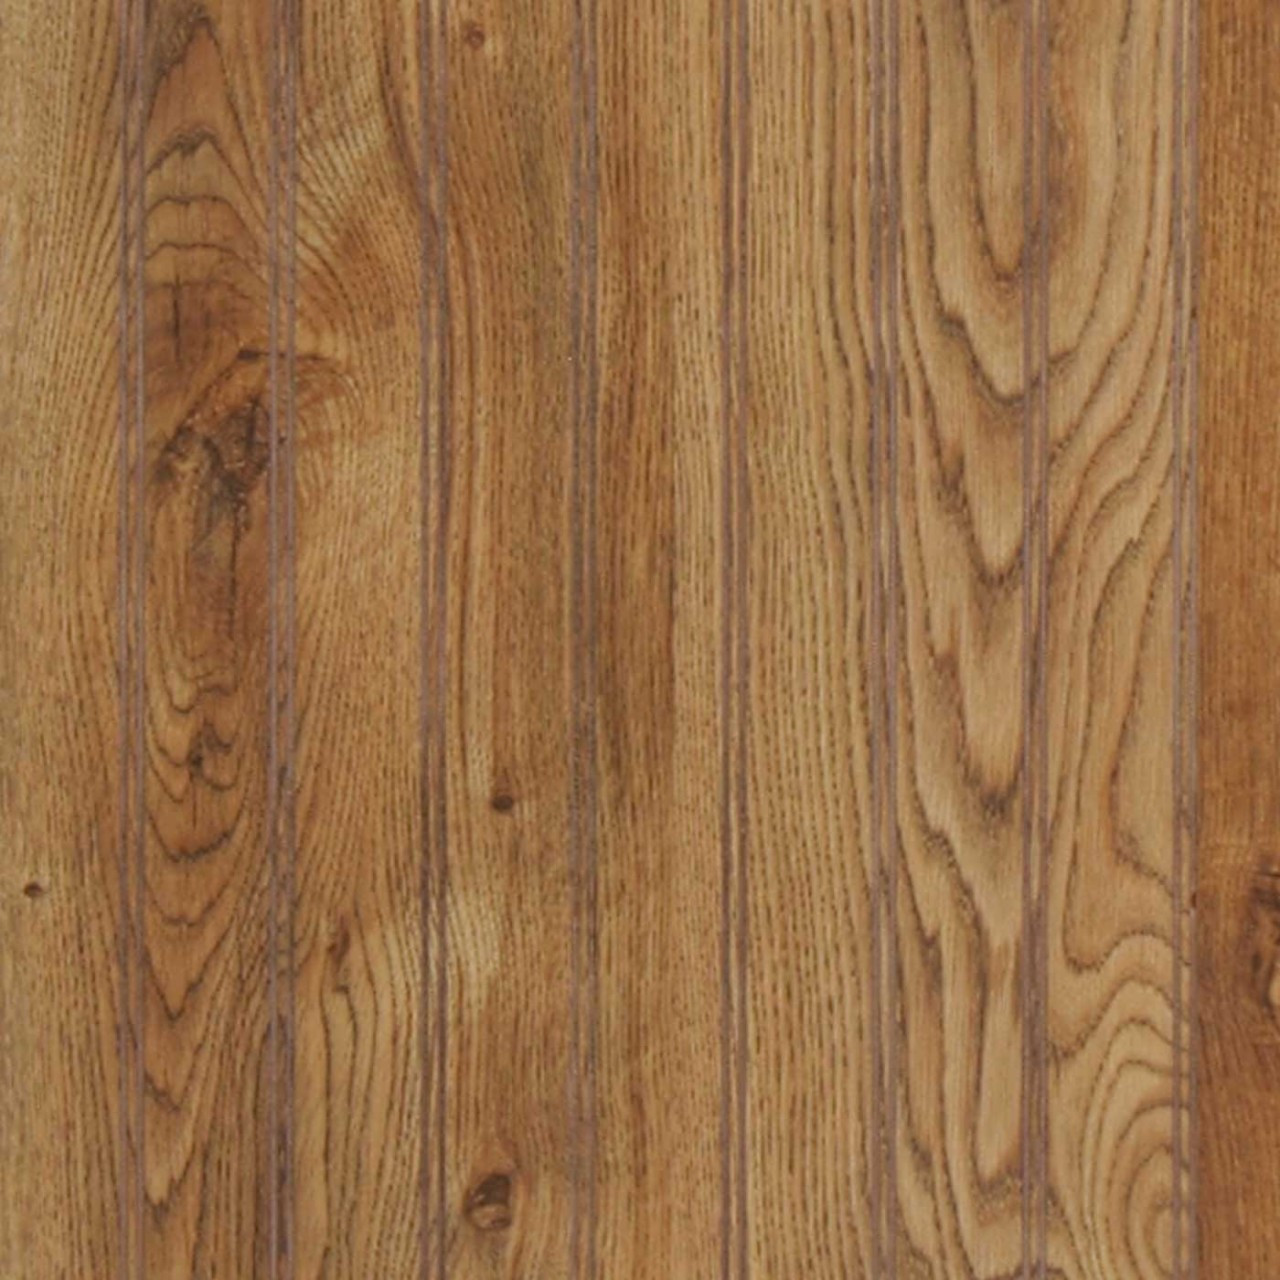 Paneling Beadboard Wall Paneling 2 Inch Beaded Gallant Oak